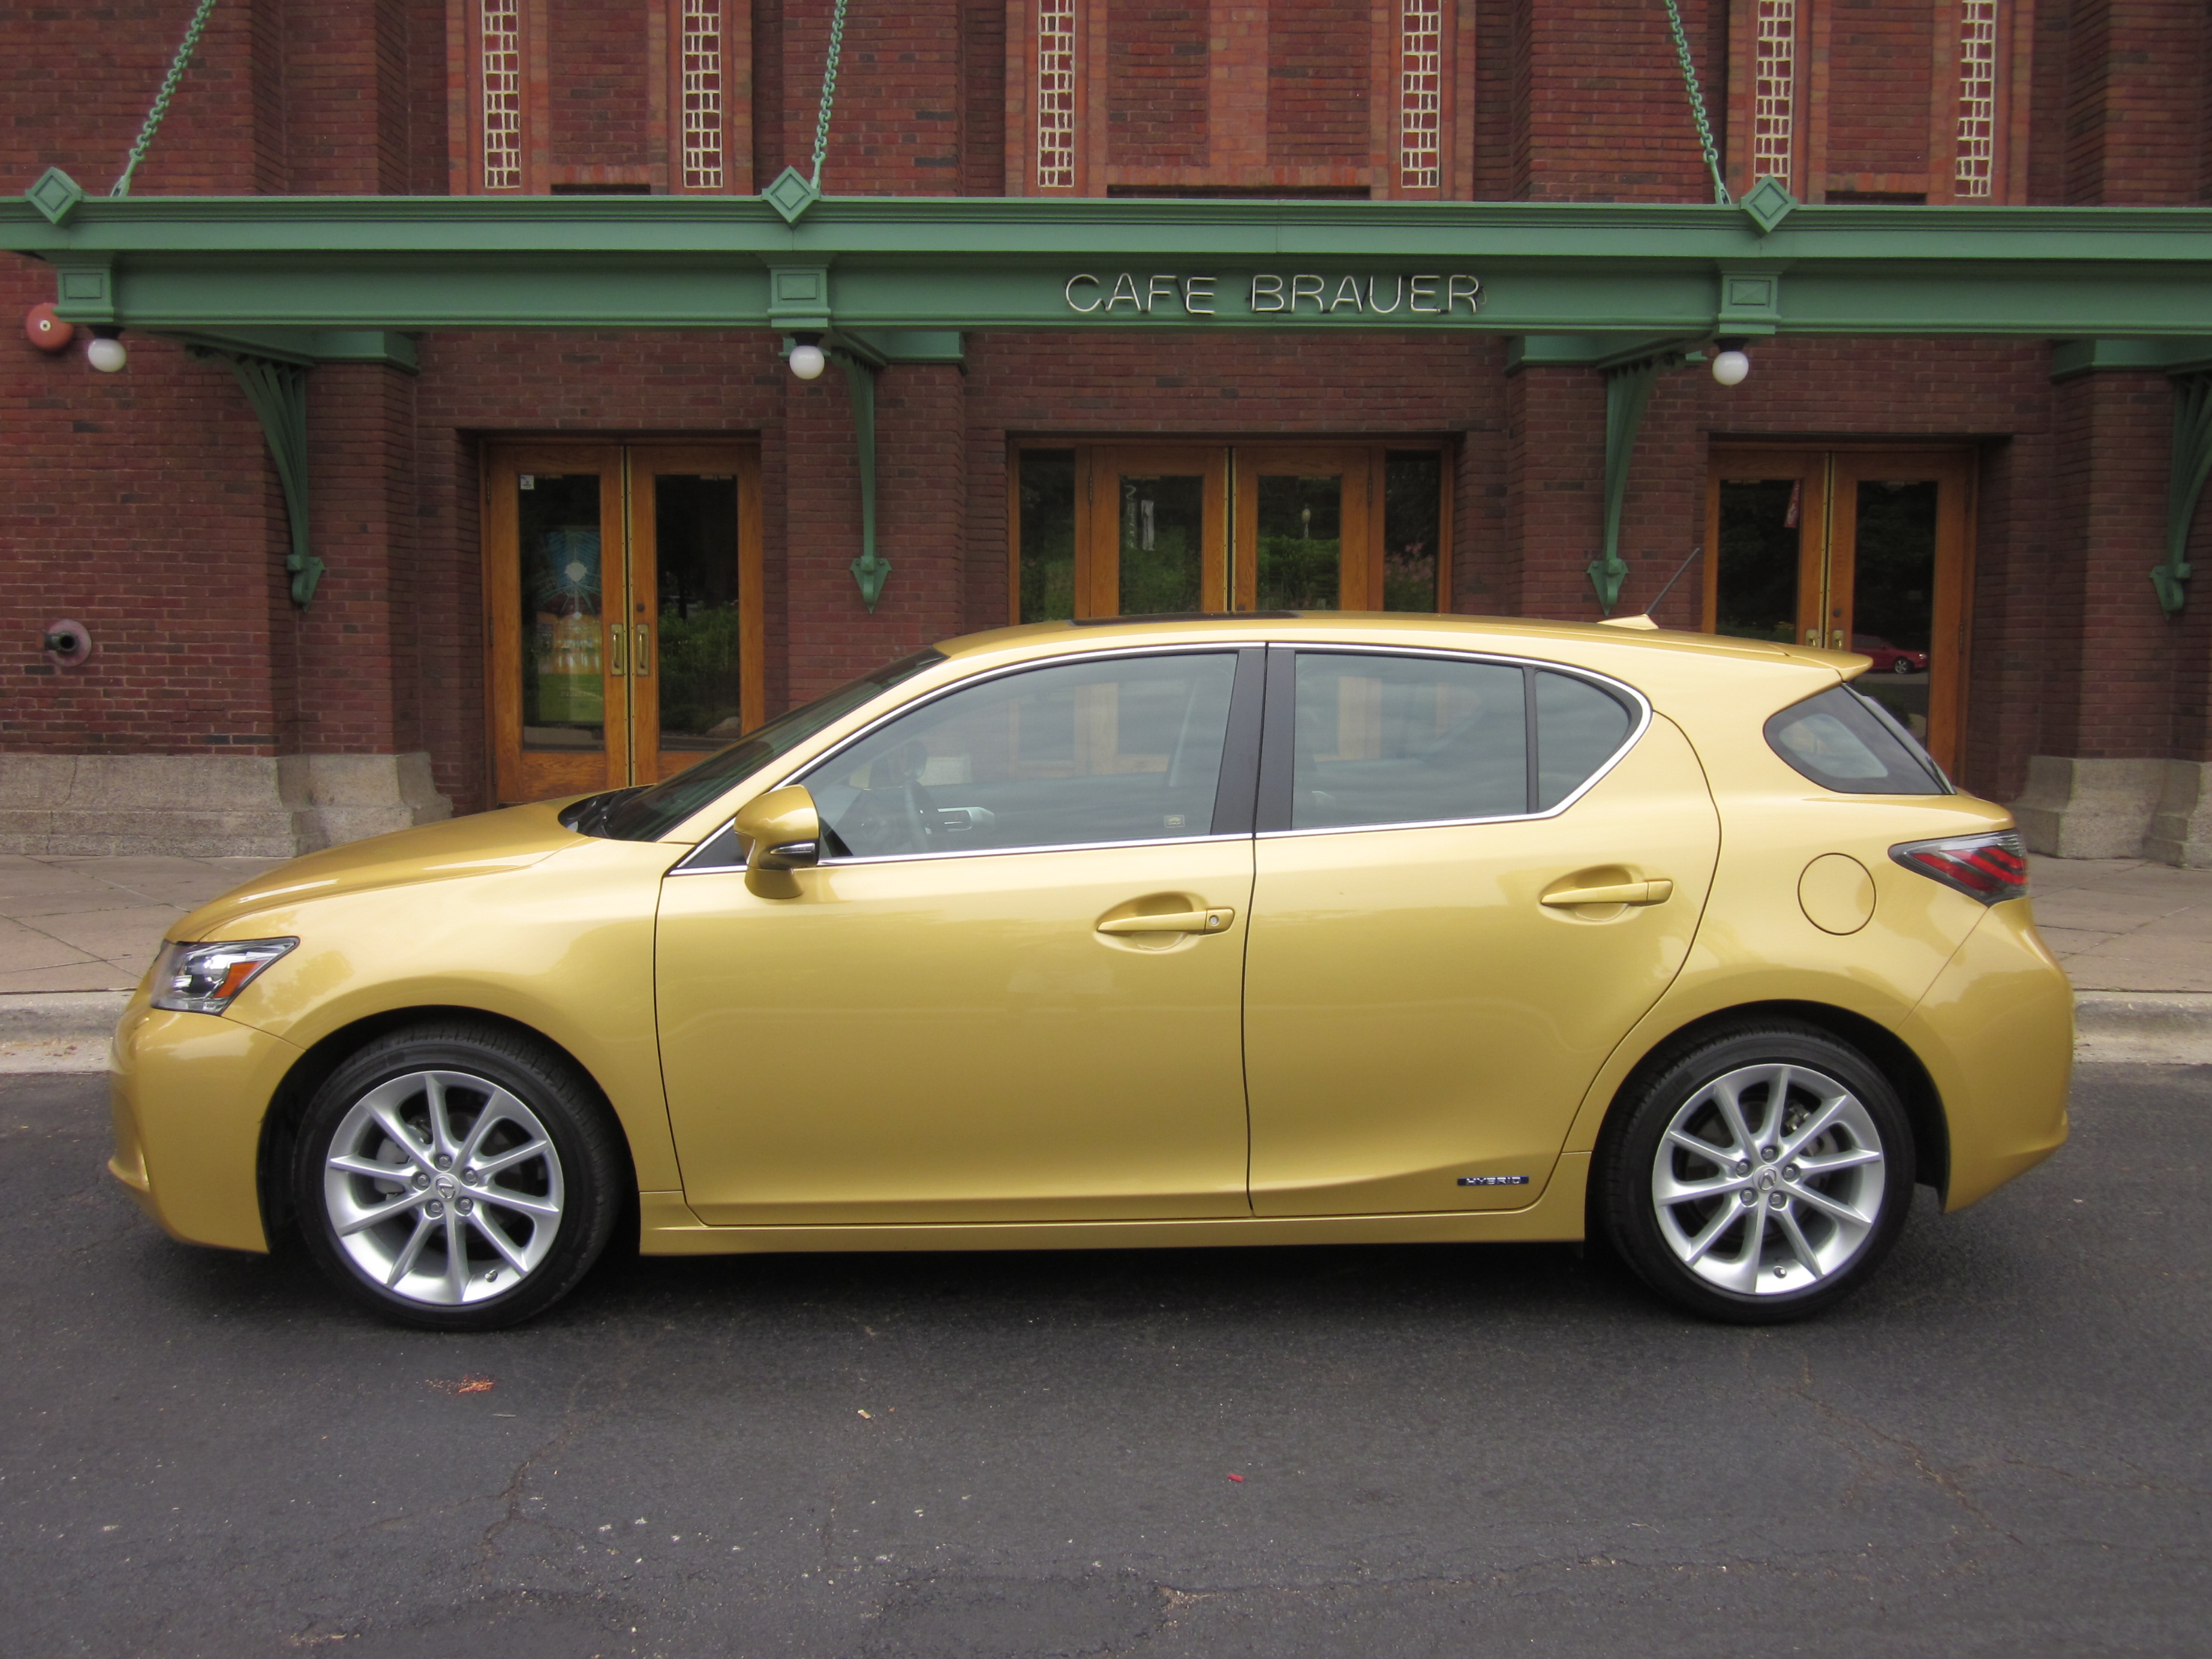 2011 Lexus Ct 200h Hybrid Review Pure Fun To Drive Video Enhanced